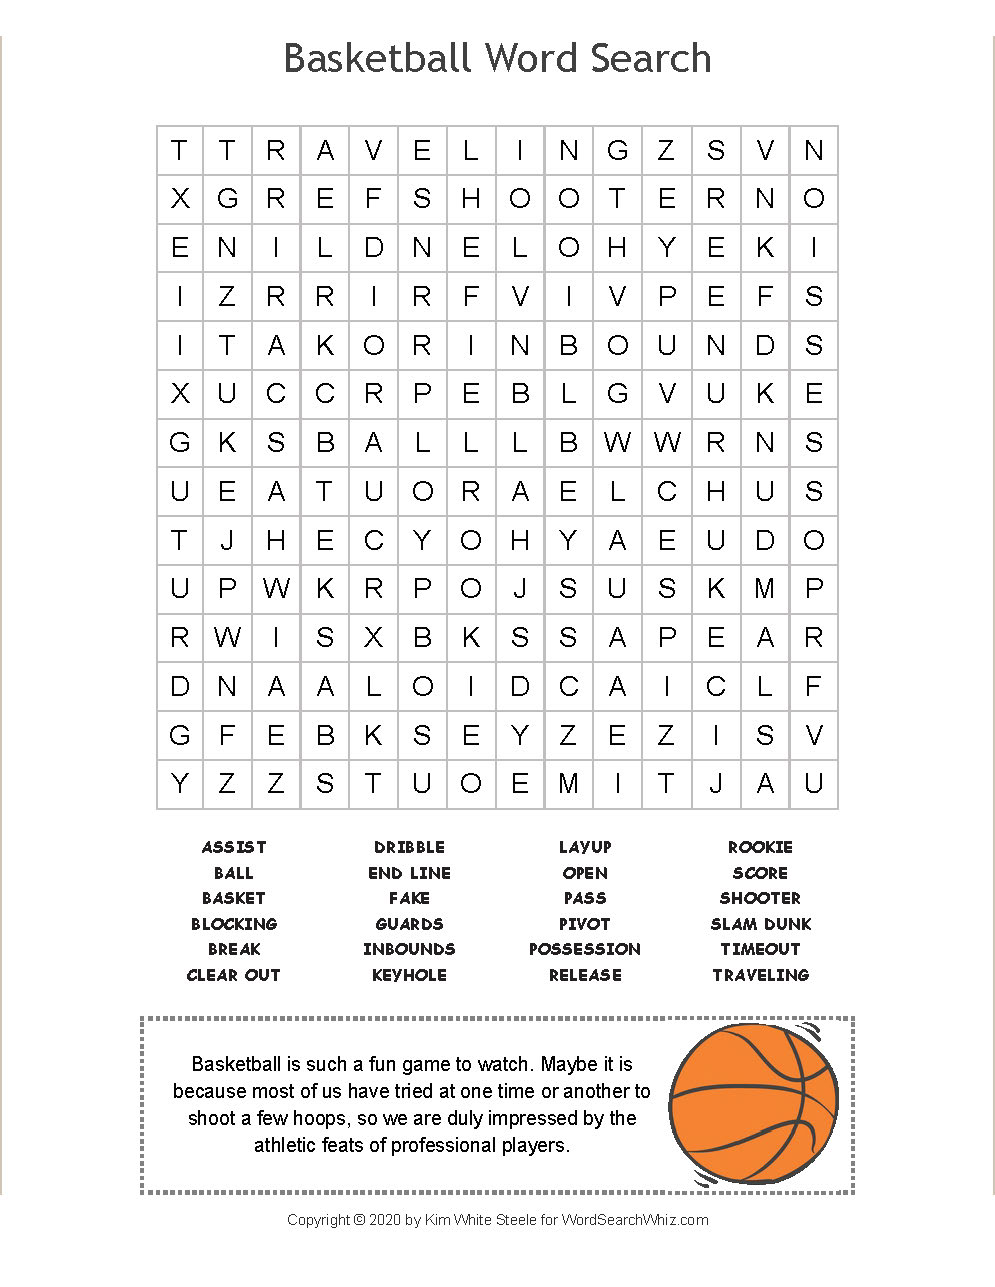 Basketball Word Search